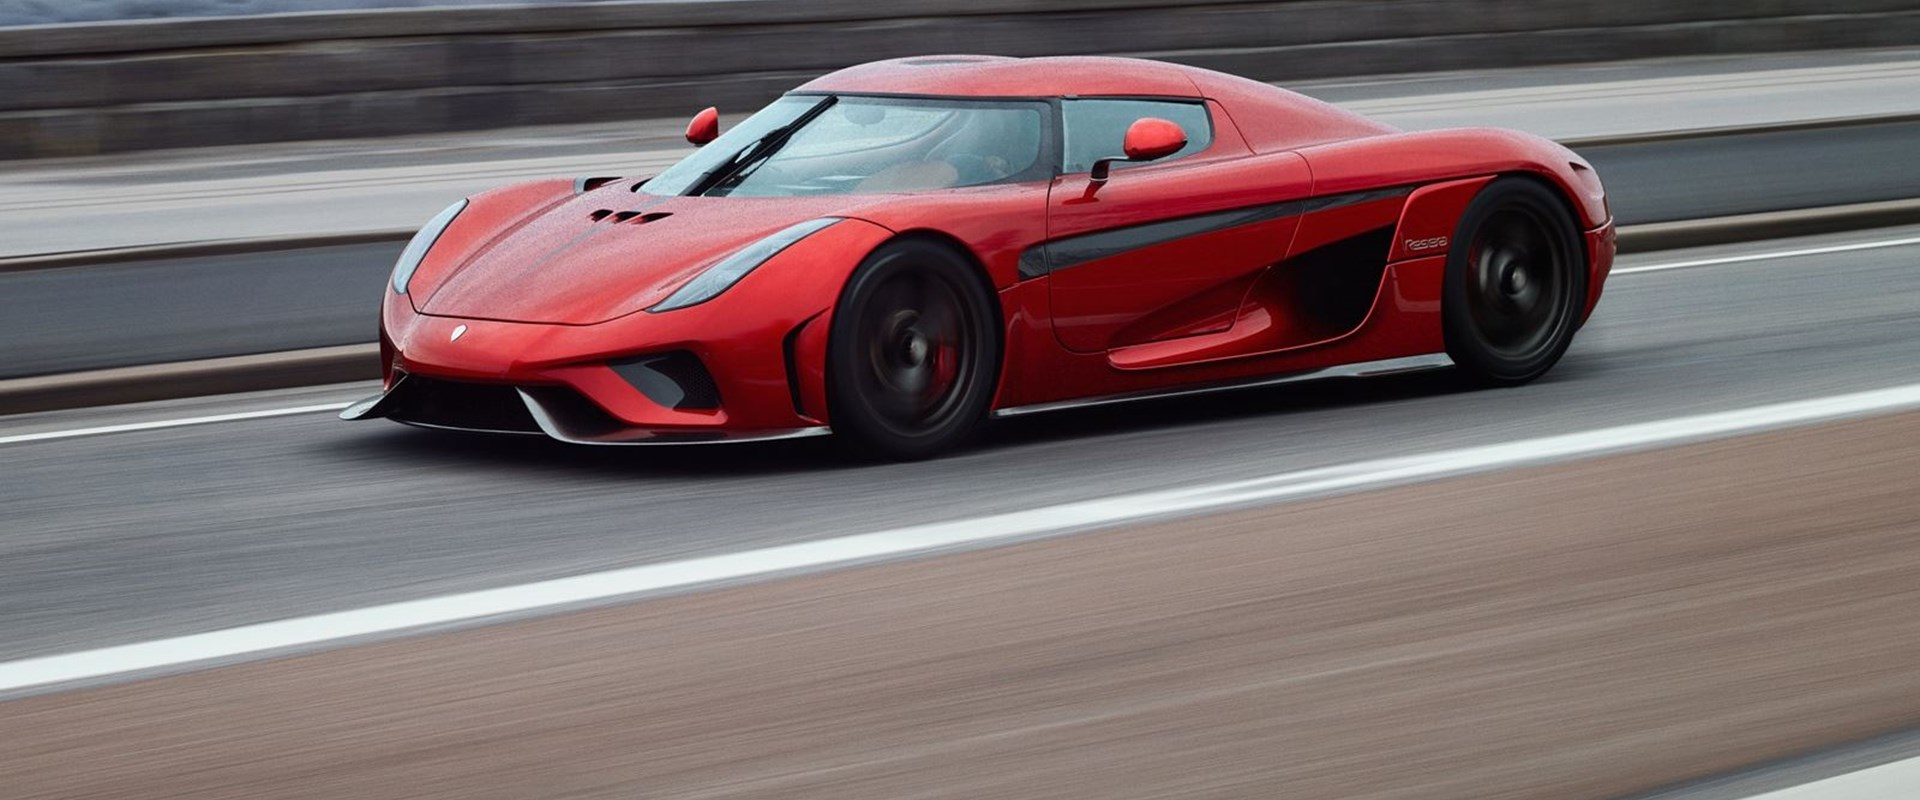 The Koenigsegg Story – From Humble Start-Up to Hypercar Killers ...